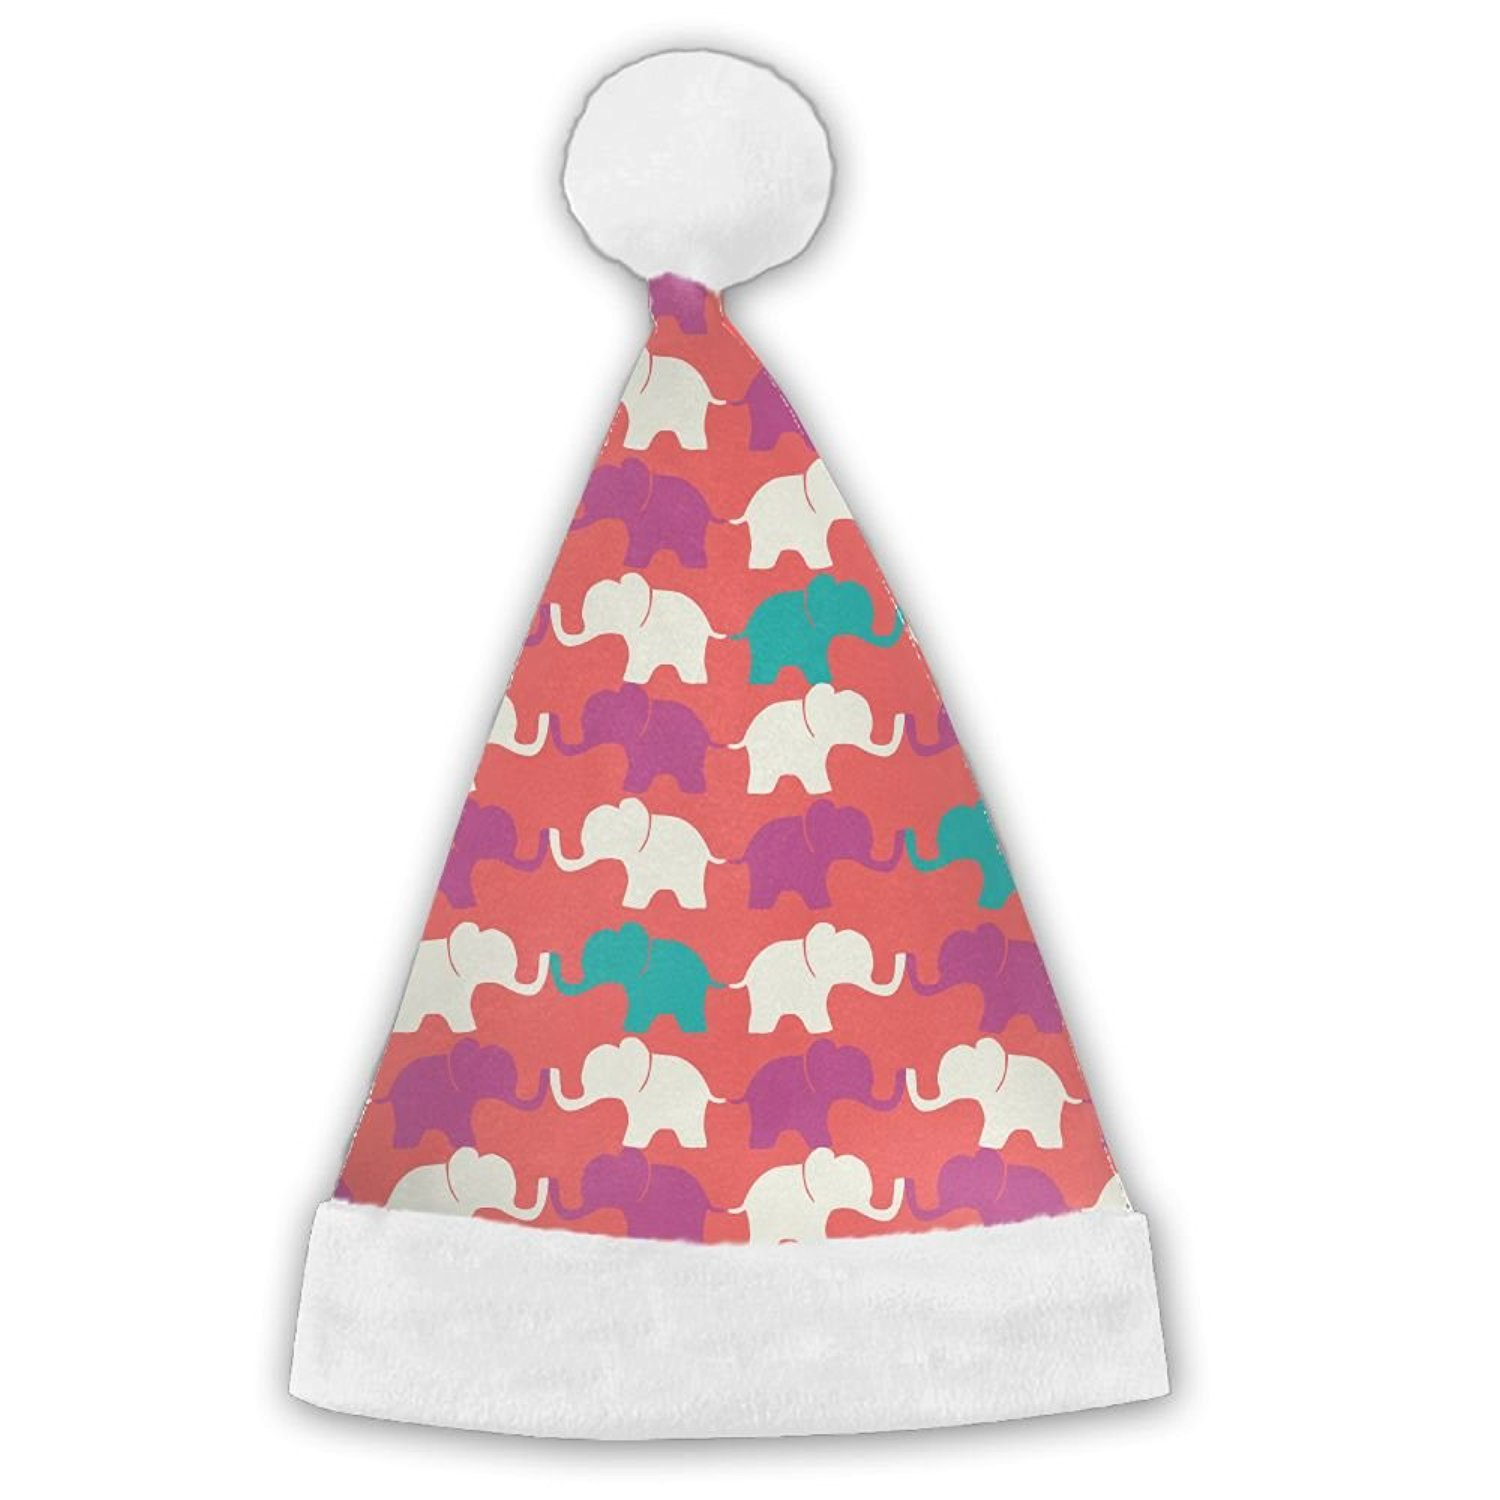 faa1abc2d14 Get Quotations · ChengGo Colorful Elephants Personalization Santa Hat r n  Shrinkage Features For Teens Elf Christmas